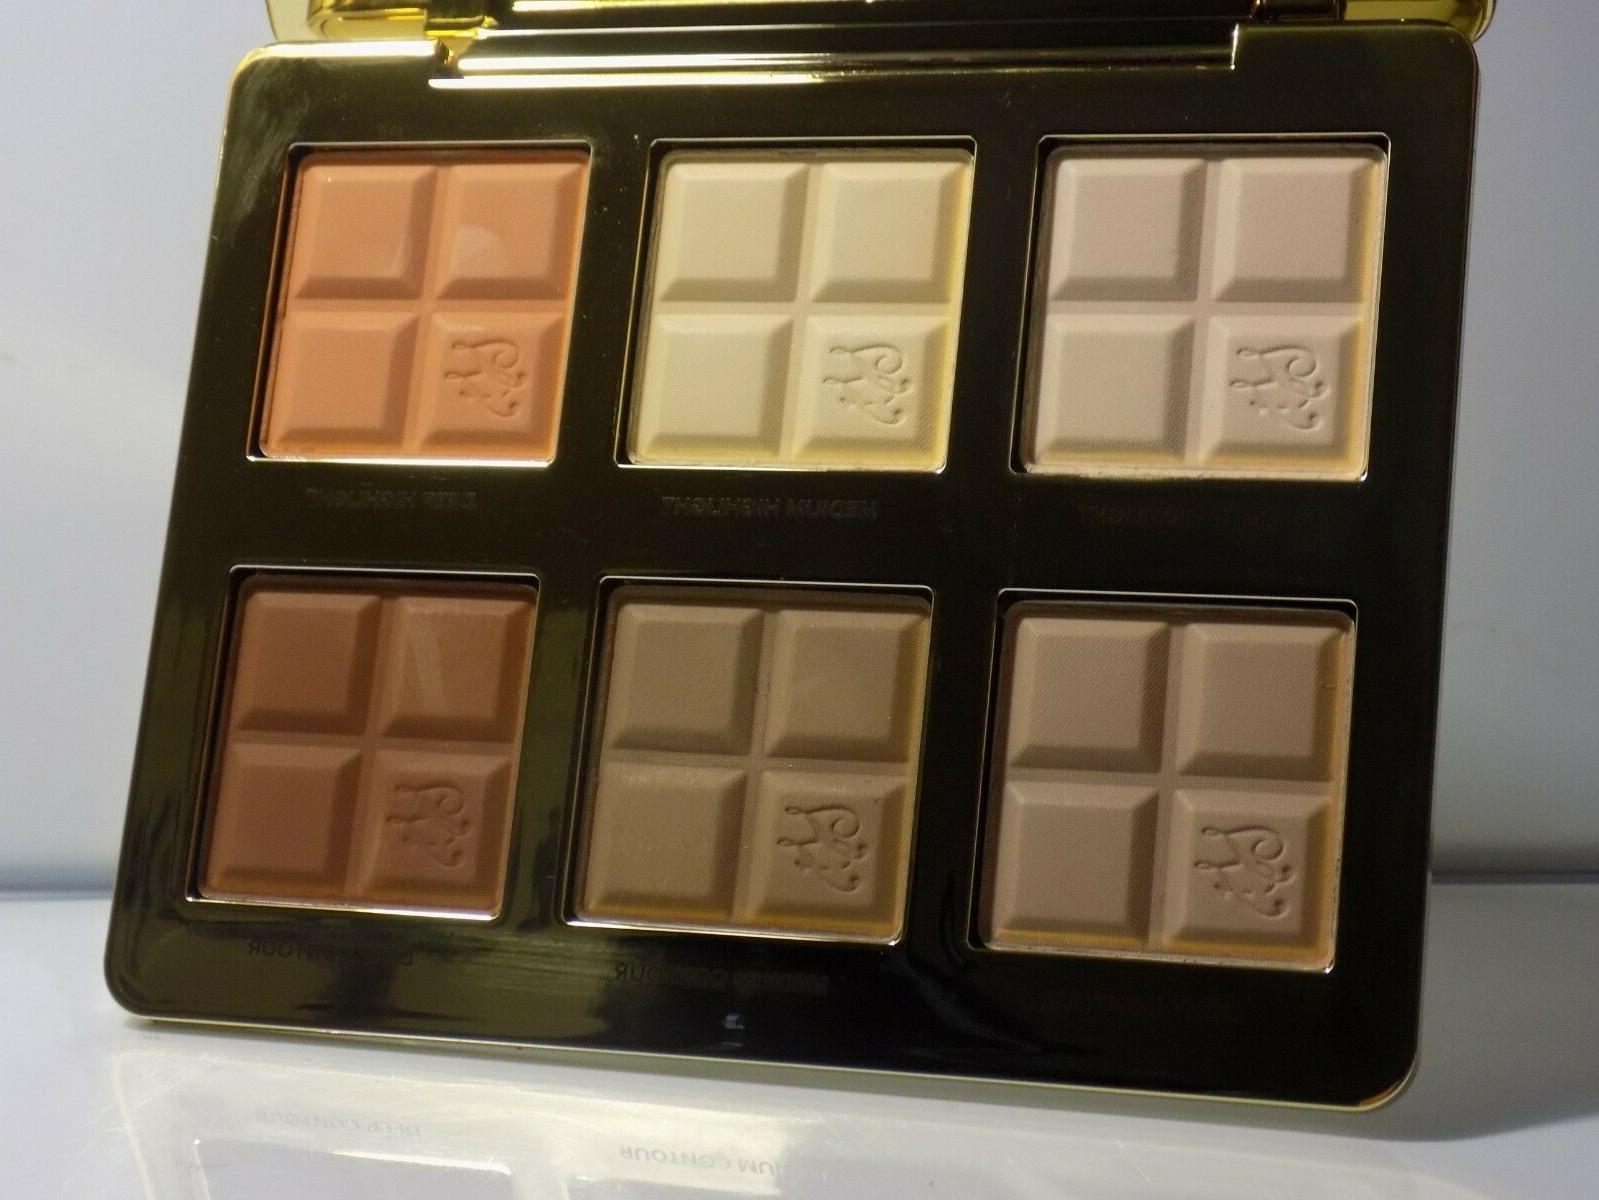 100% Cocoa Contouring and Highlighting Palette *READ DETAILS